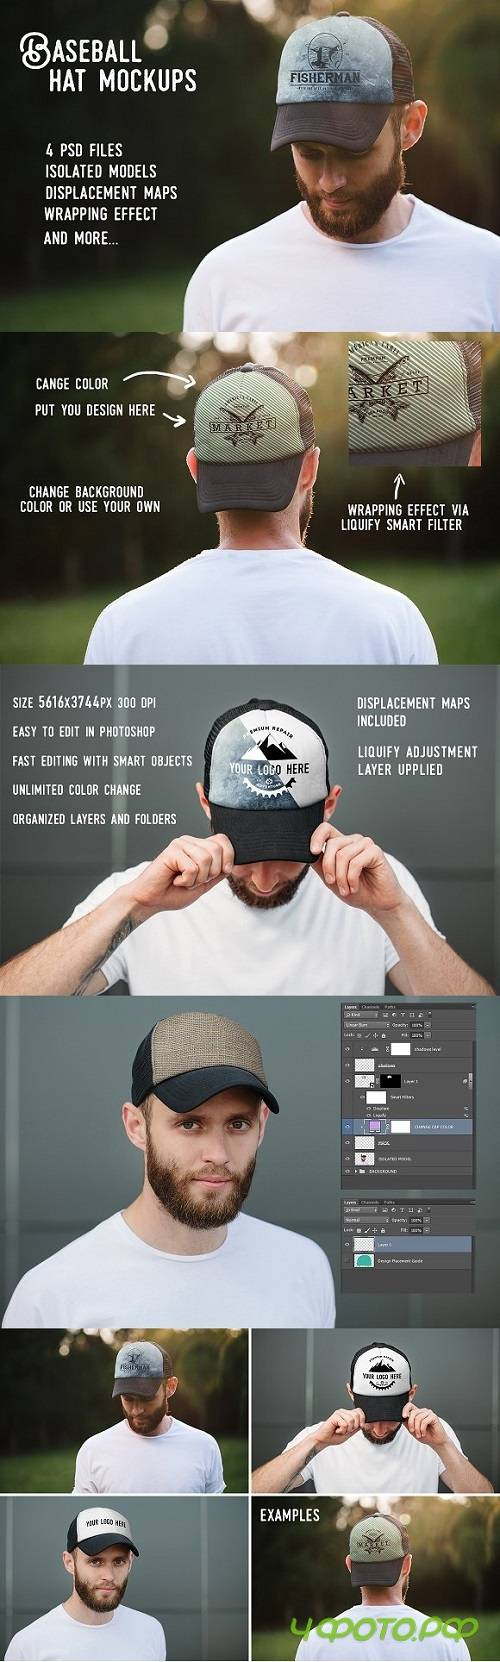 Baseball hat mock up 1521710